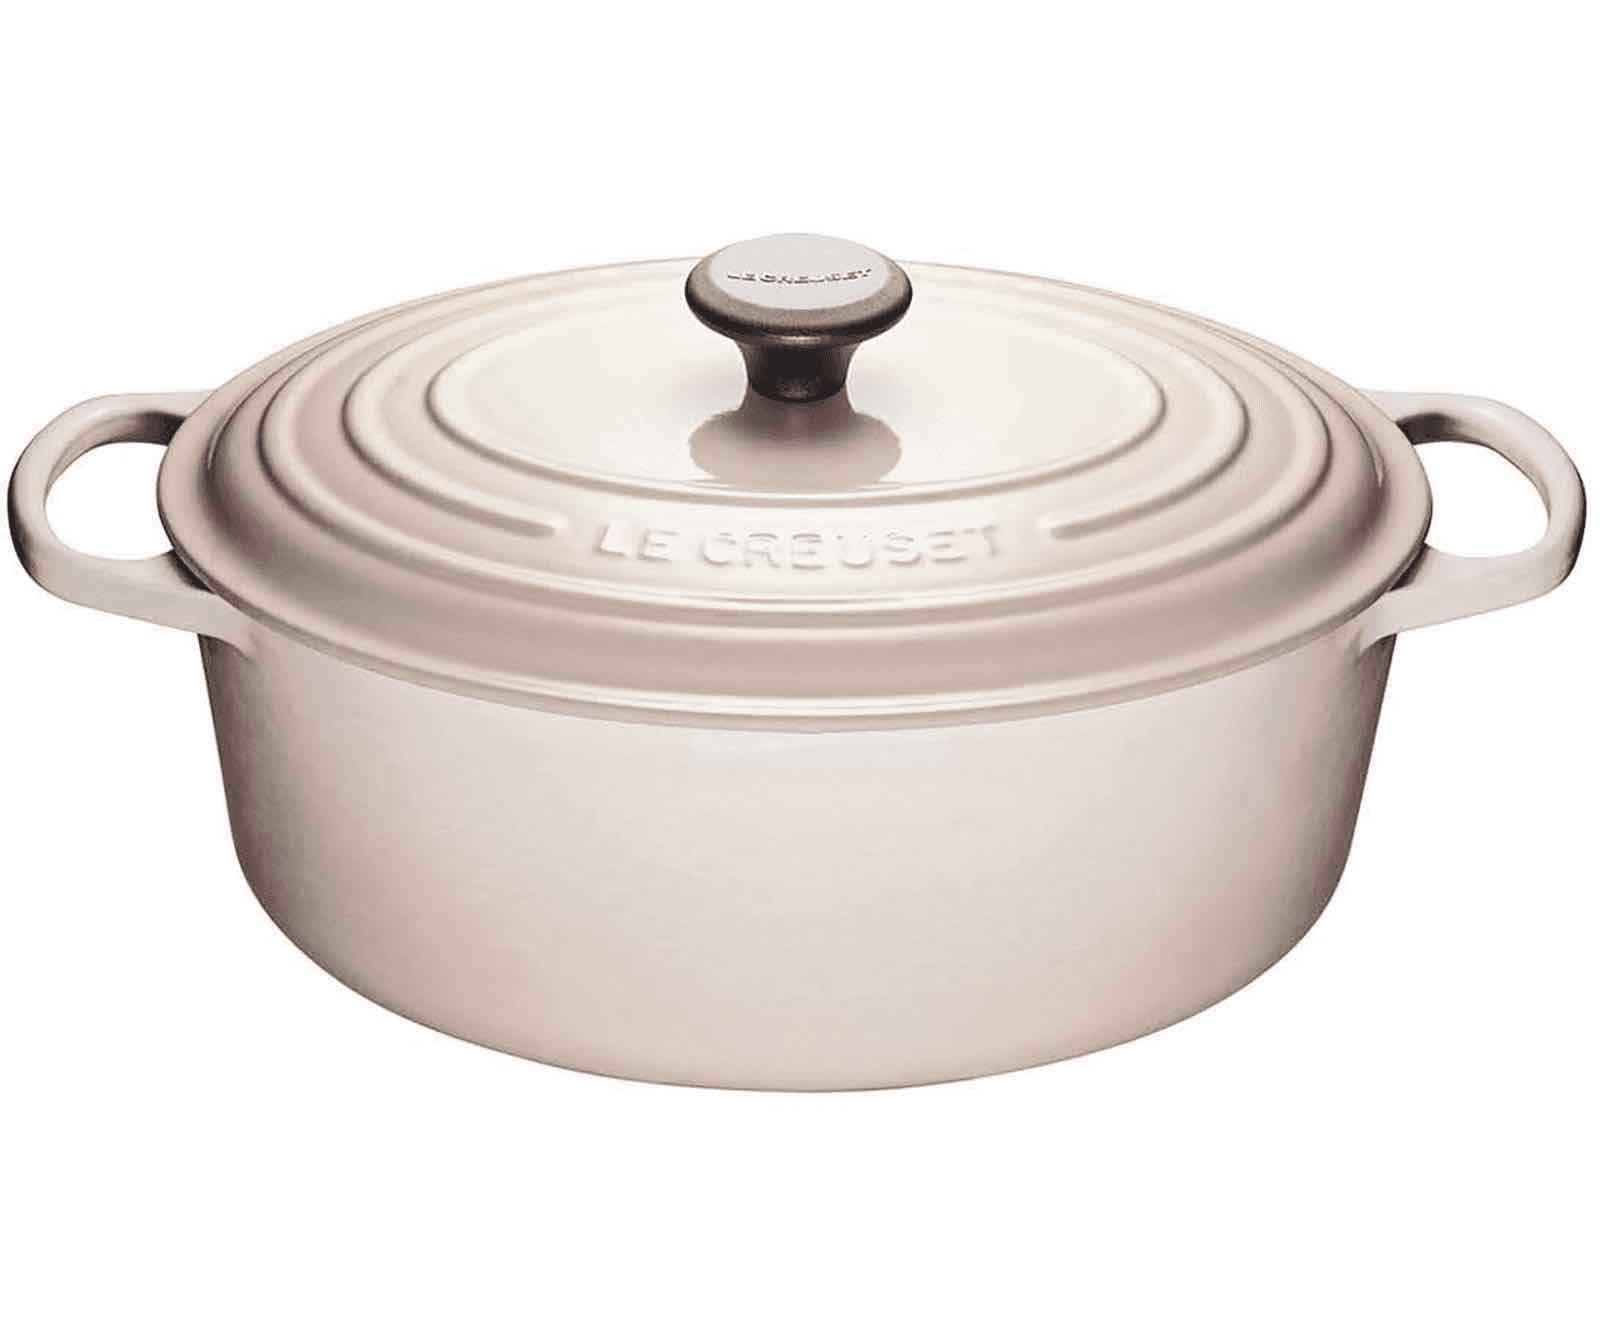 Le Creuset Oval French Oven 6.3L | Meringue